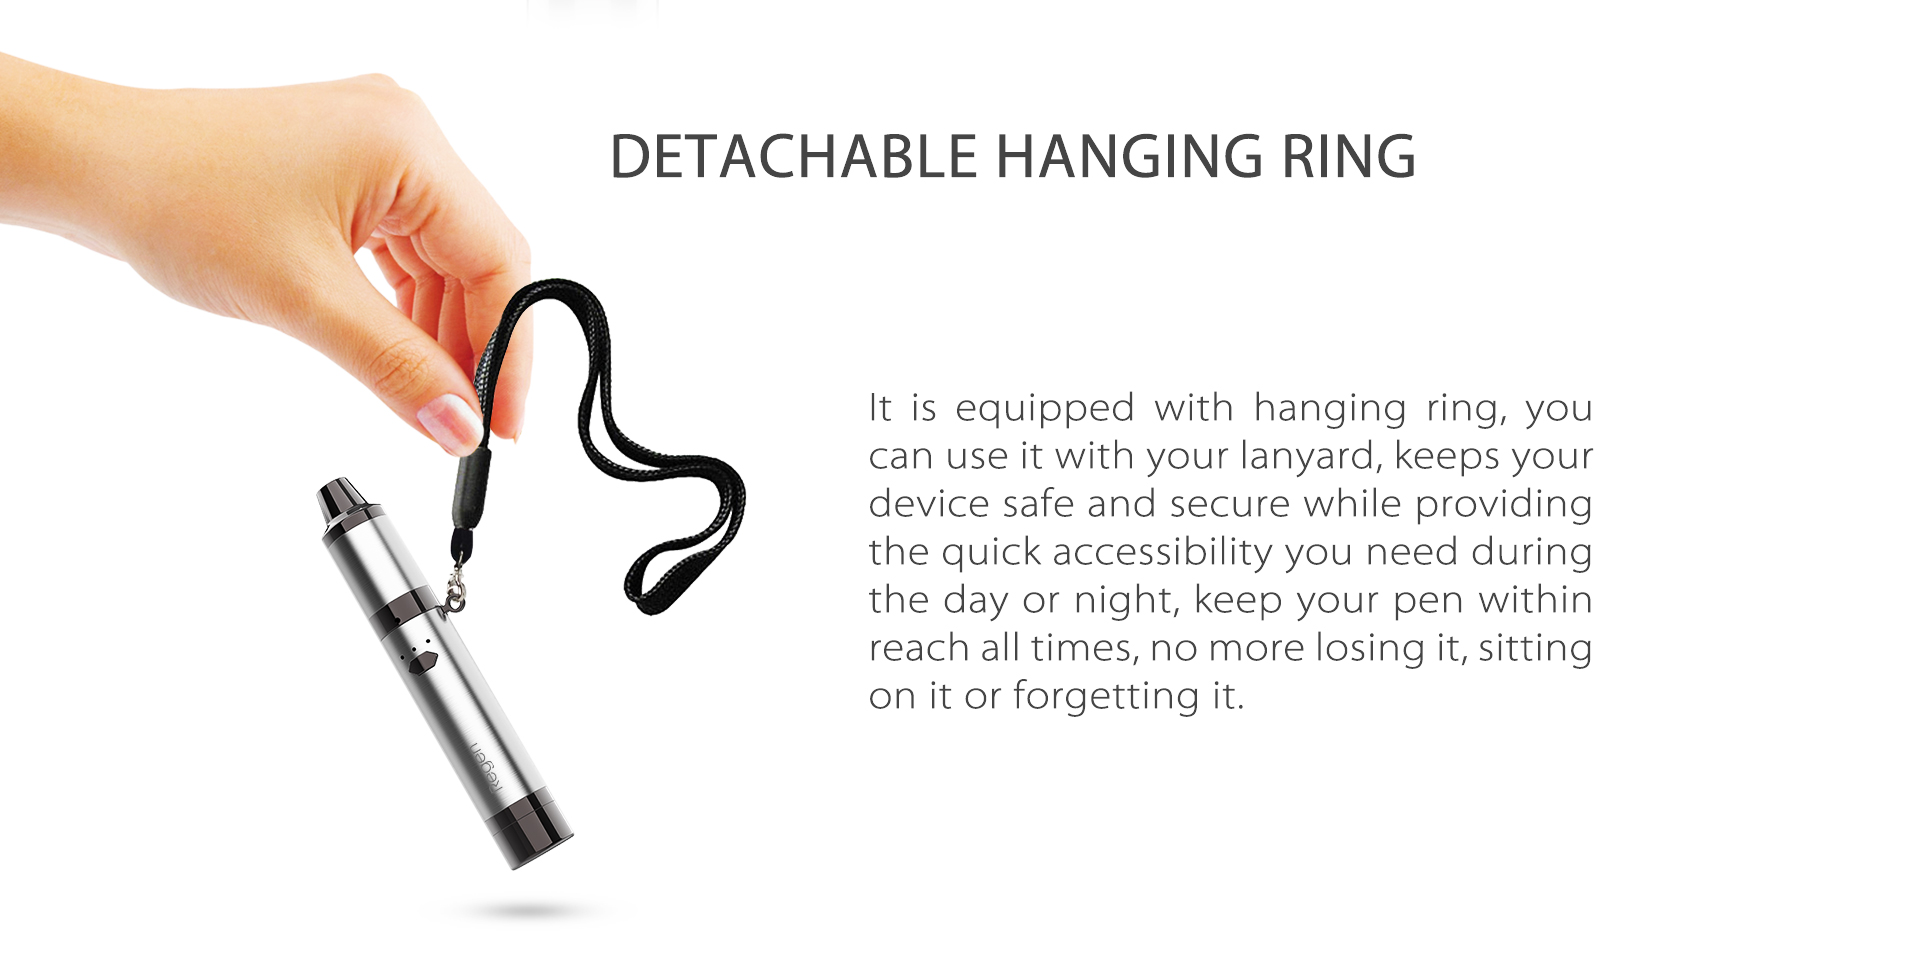 Yocan Regen vaporizer pen equipped with hanging ring, you can use it with your lanyard.